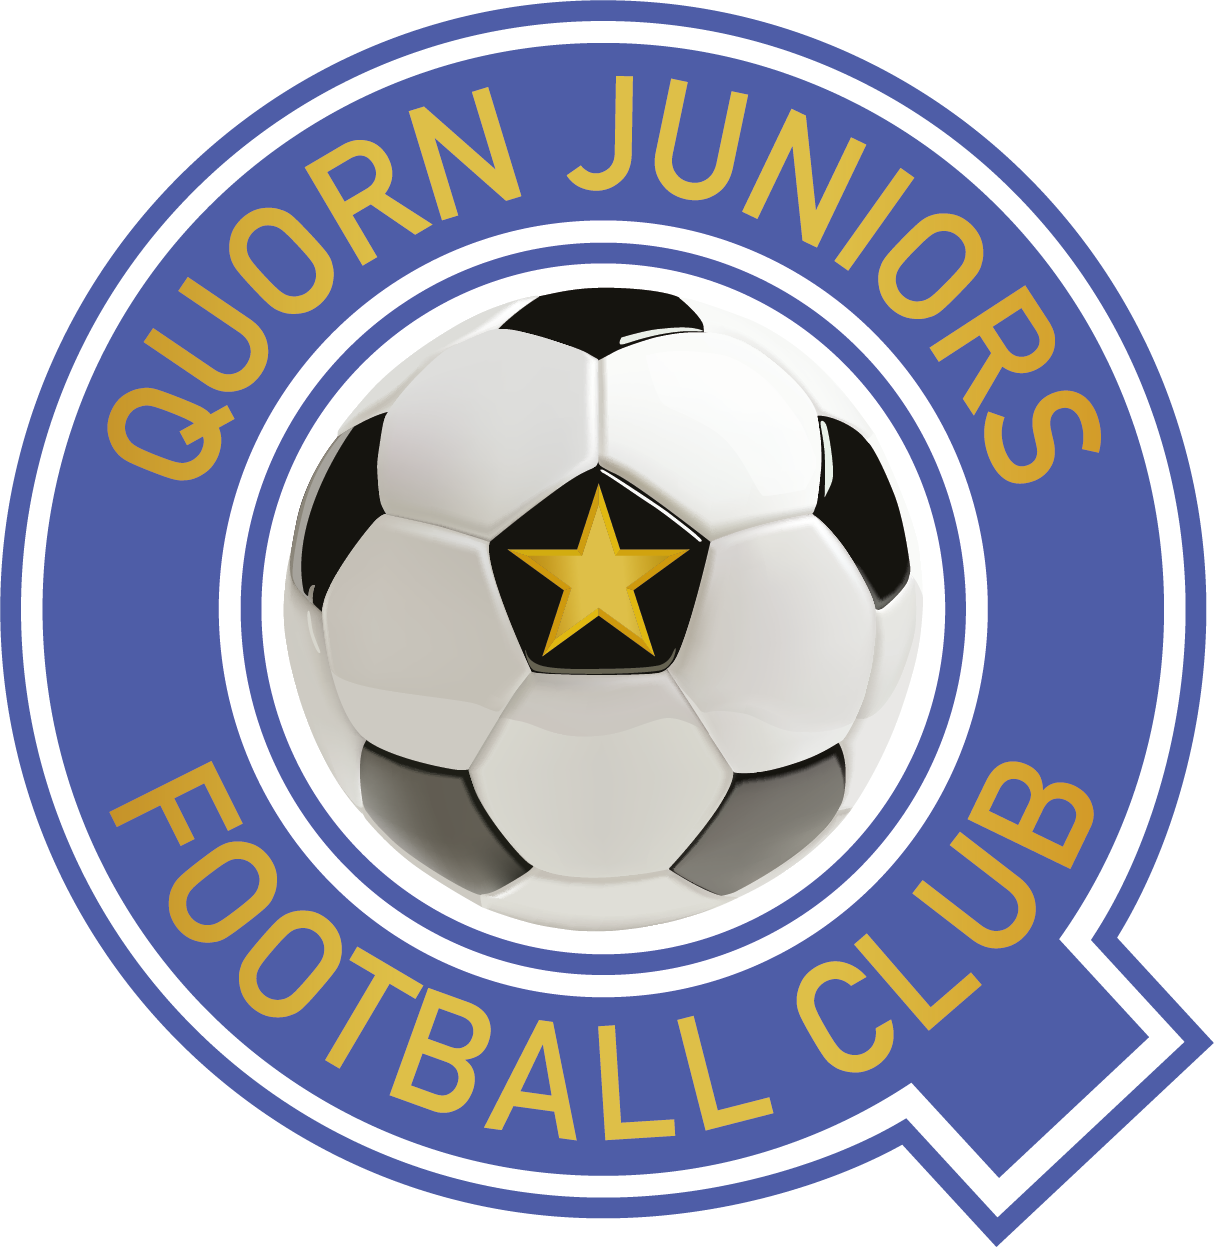 Quorn Juniors Football Club